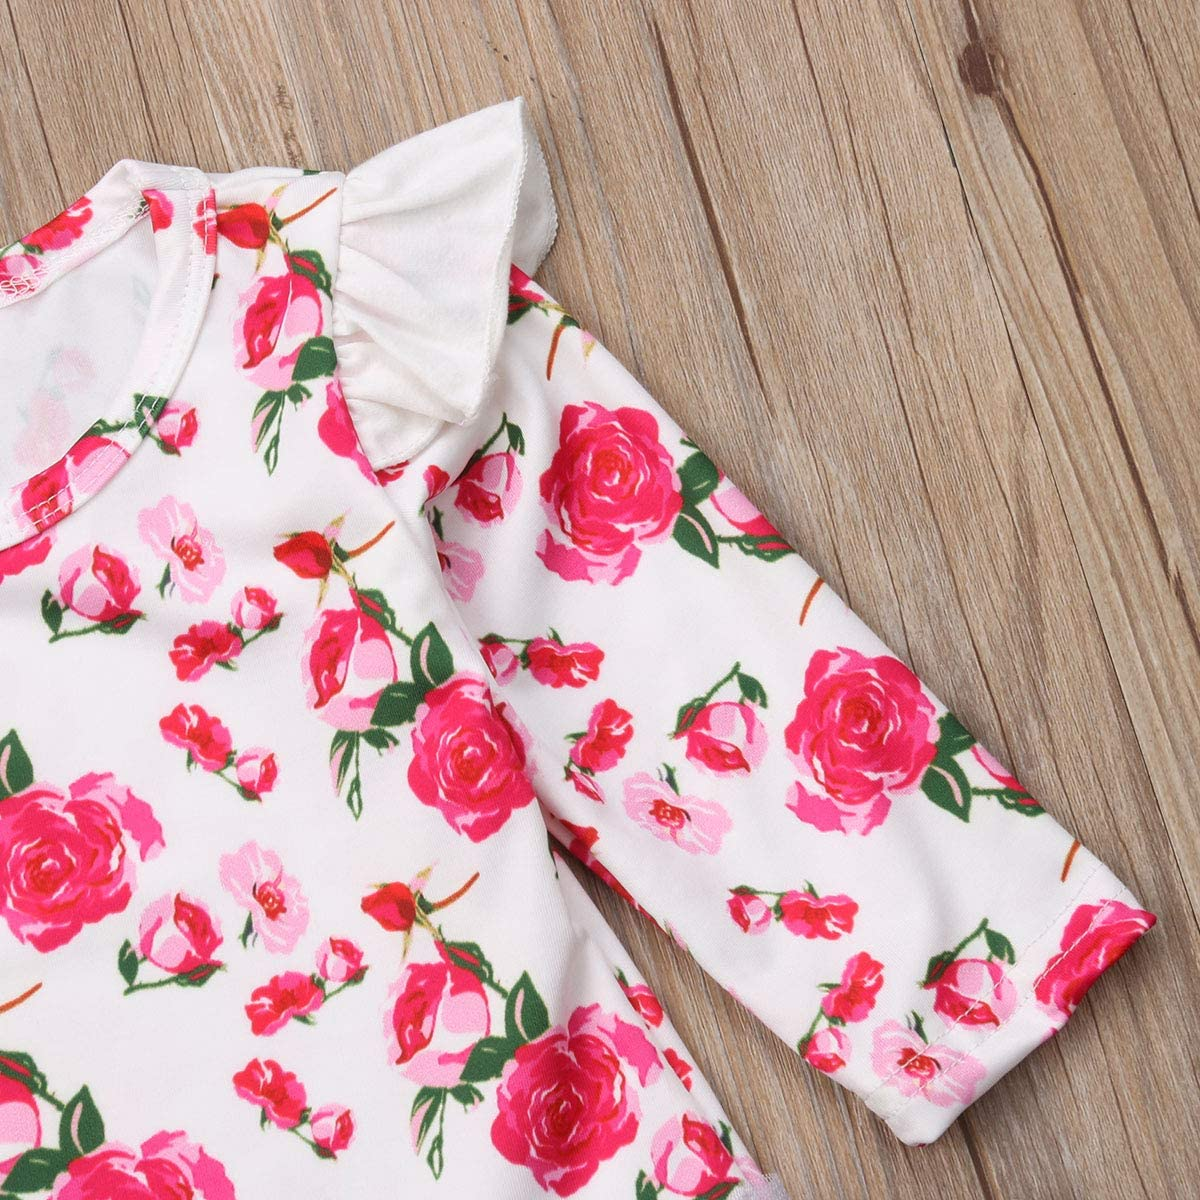 Baby Girl Clothes Floral Rose Long Sleeve Romper Bodysuits Tops Tutu Lace Skirts Outfits Set Baby Party Clothes